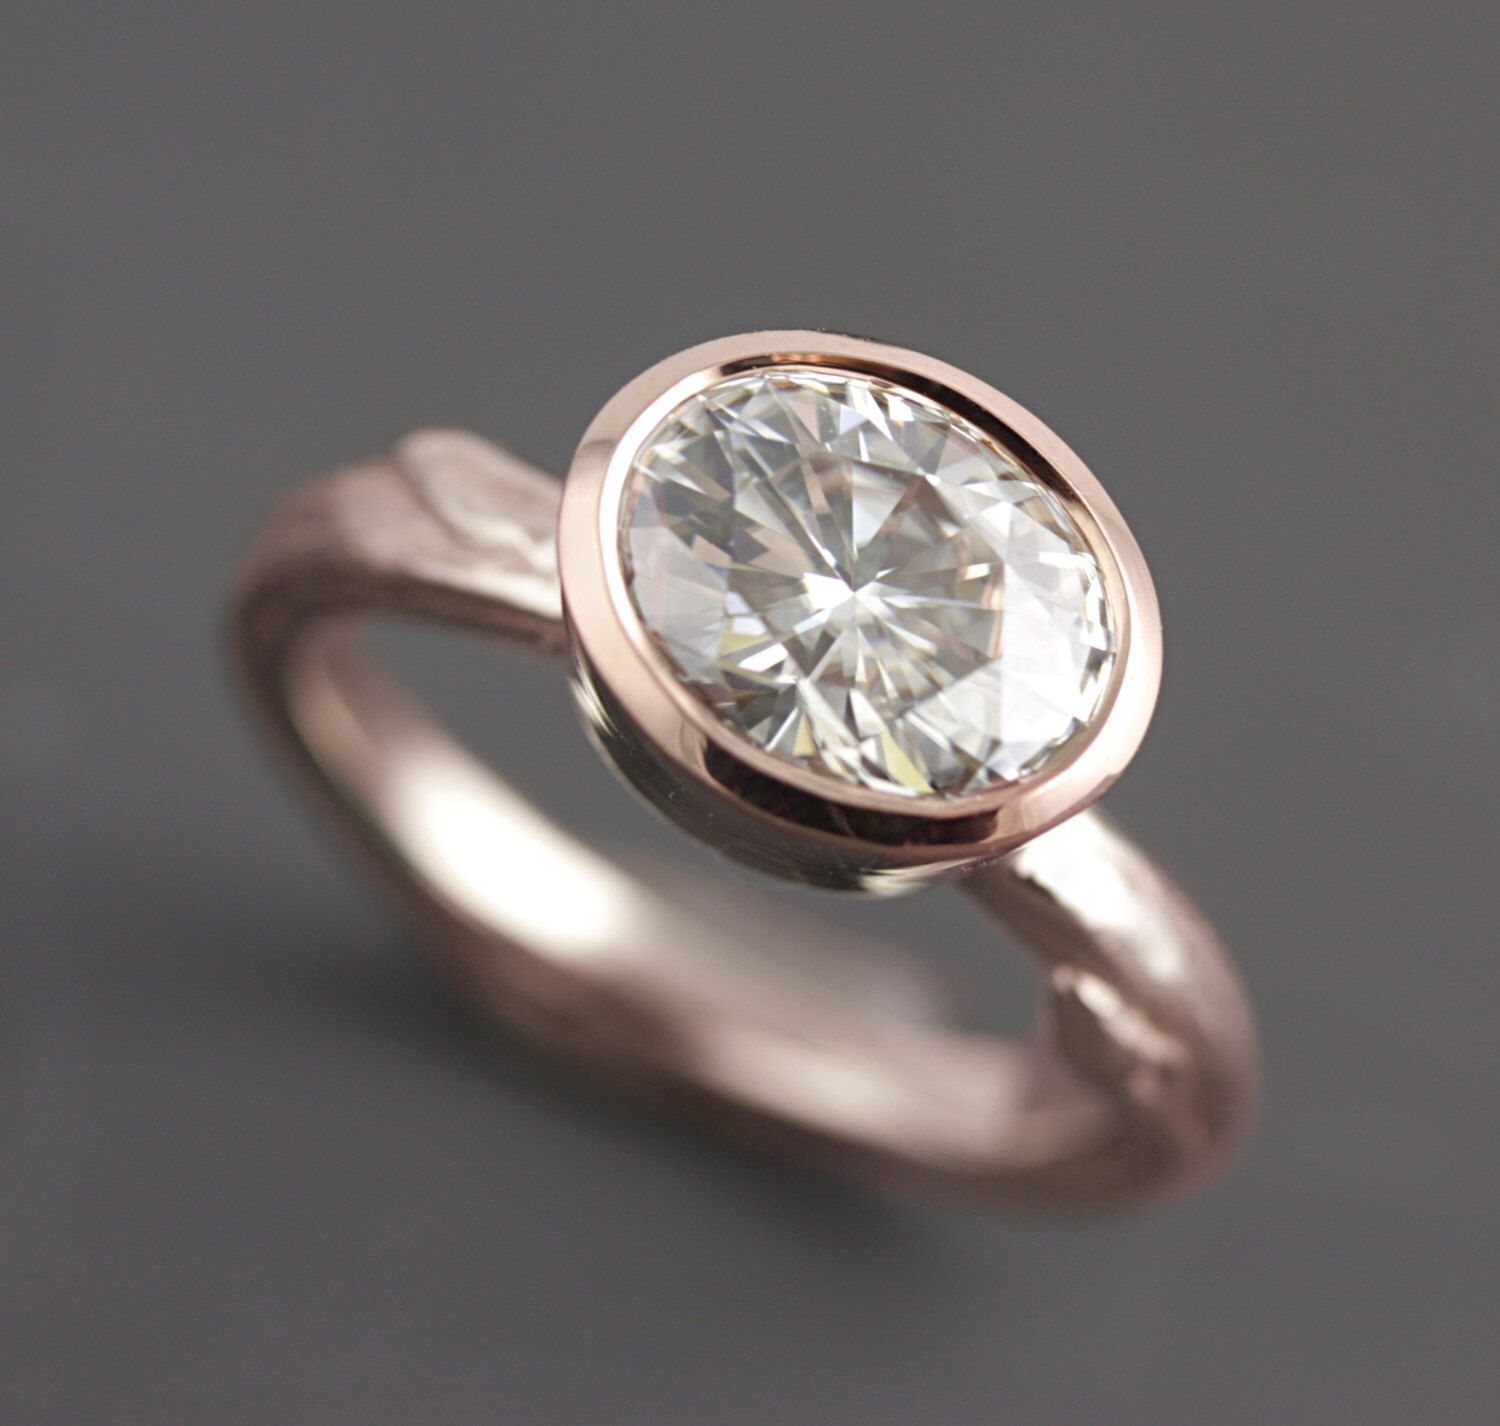 Recycled Eco Friendly Rose Gold Twig Ring with Oval Moissanite